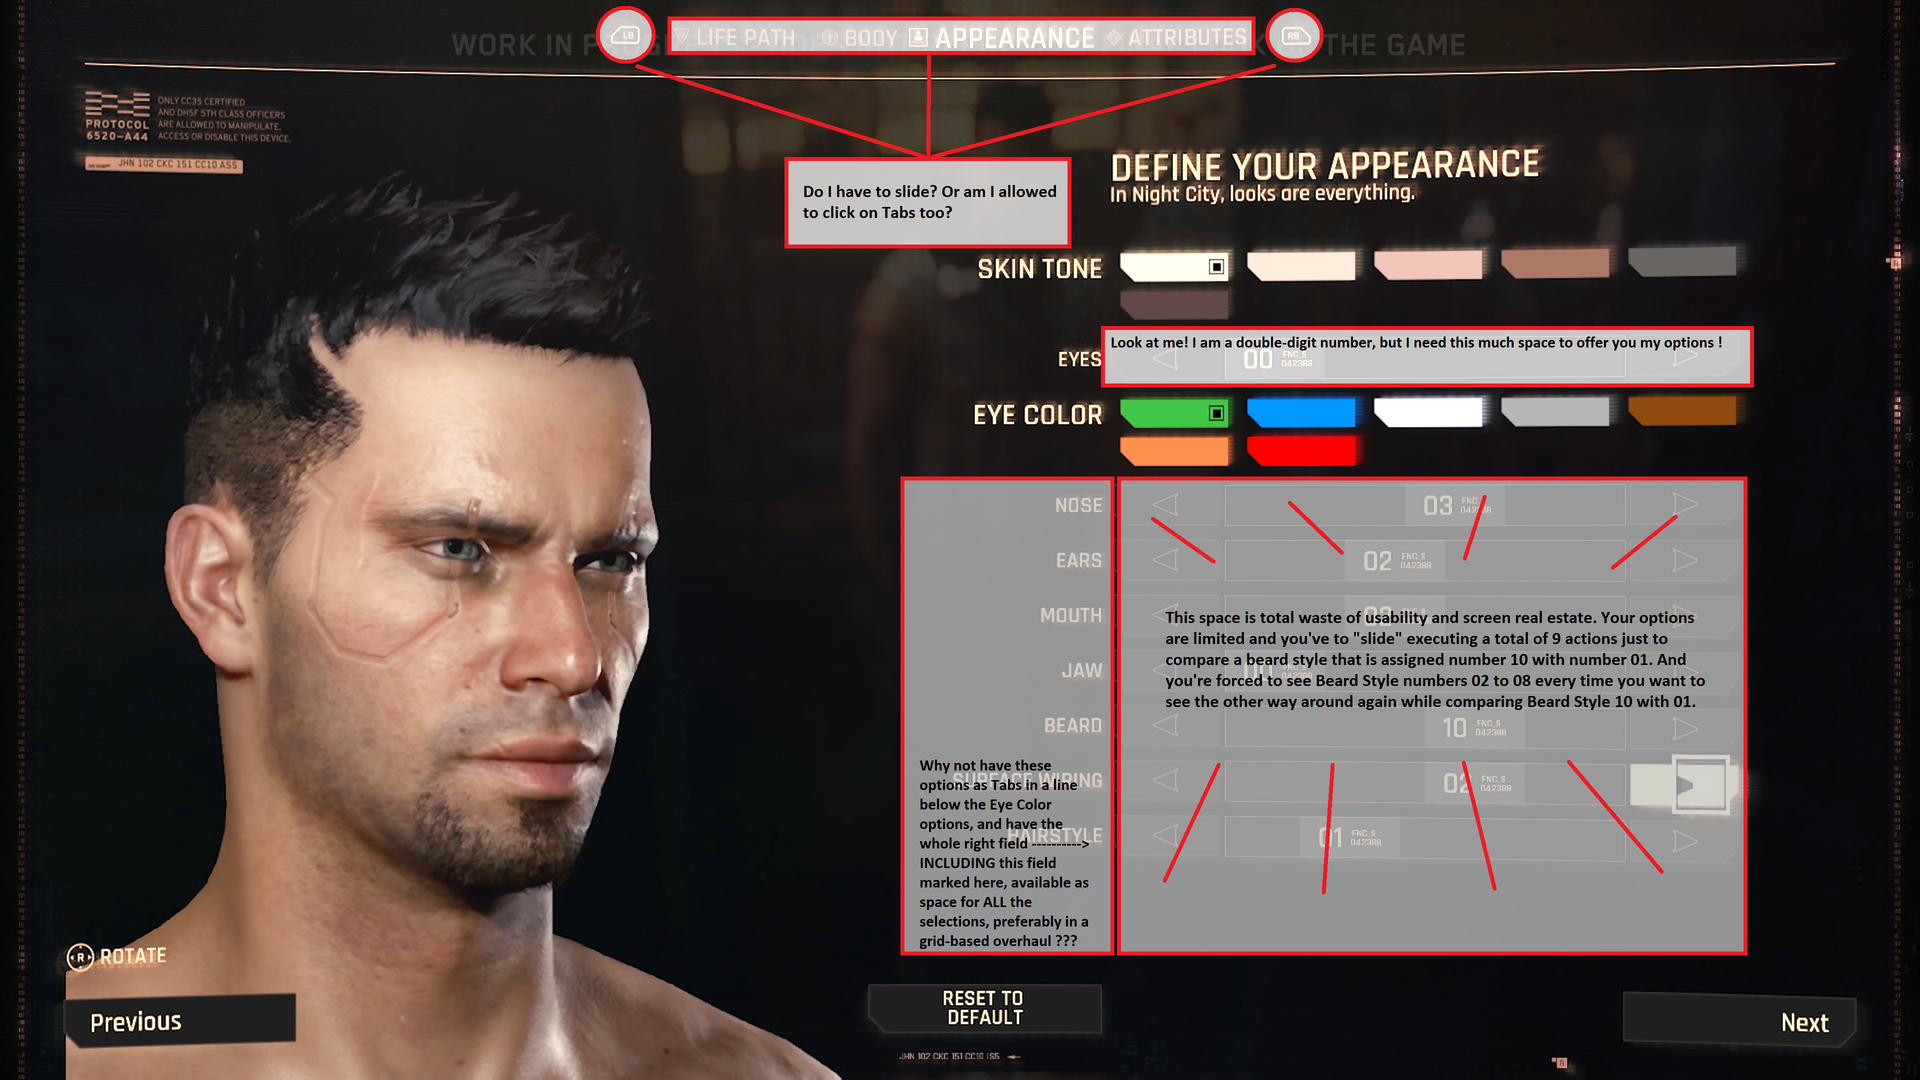 main_menu_character_creation_03_appearance_edited_1080p.PNG